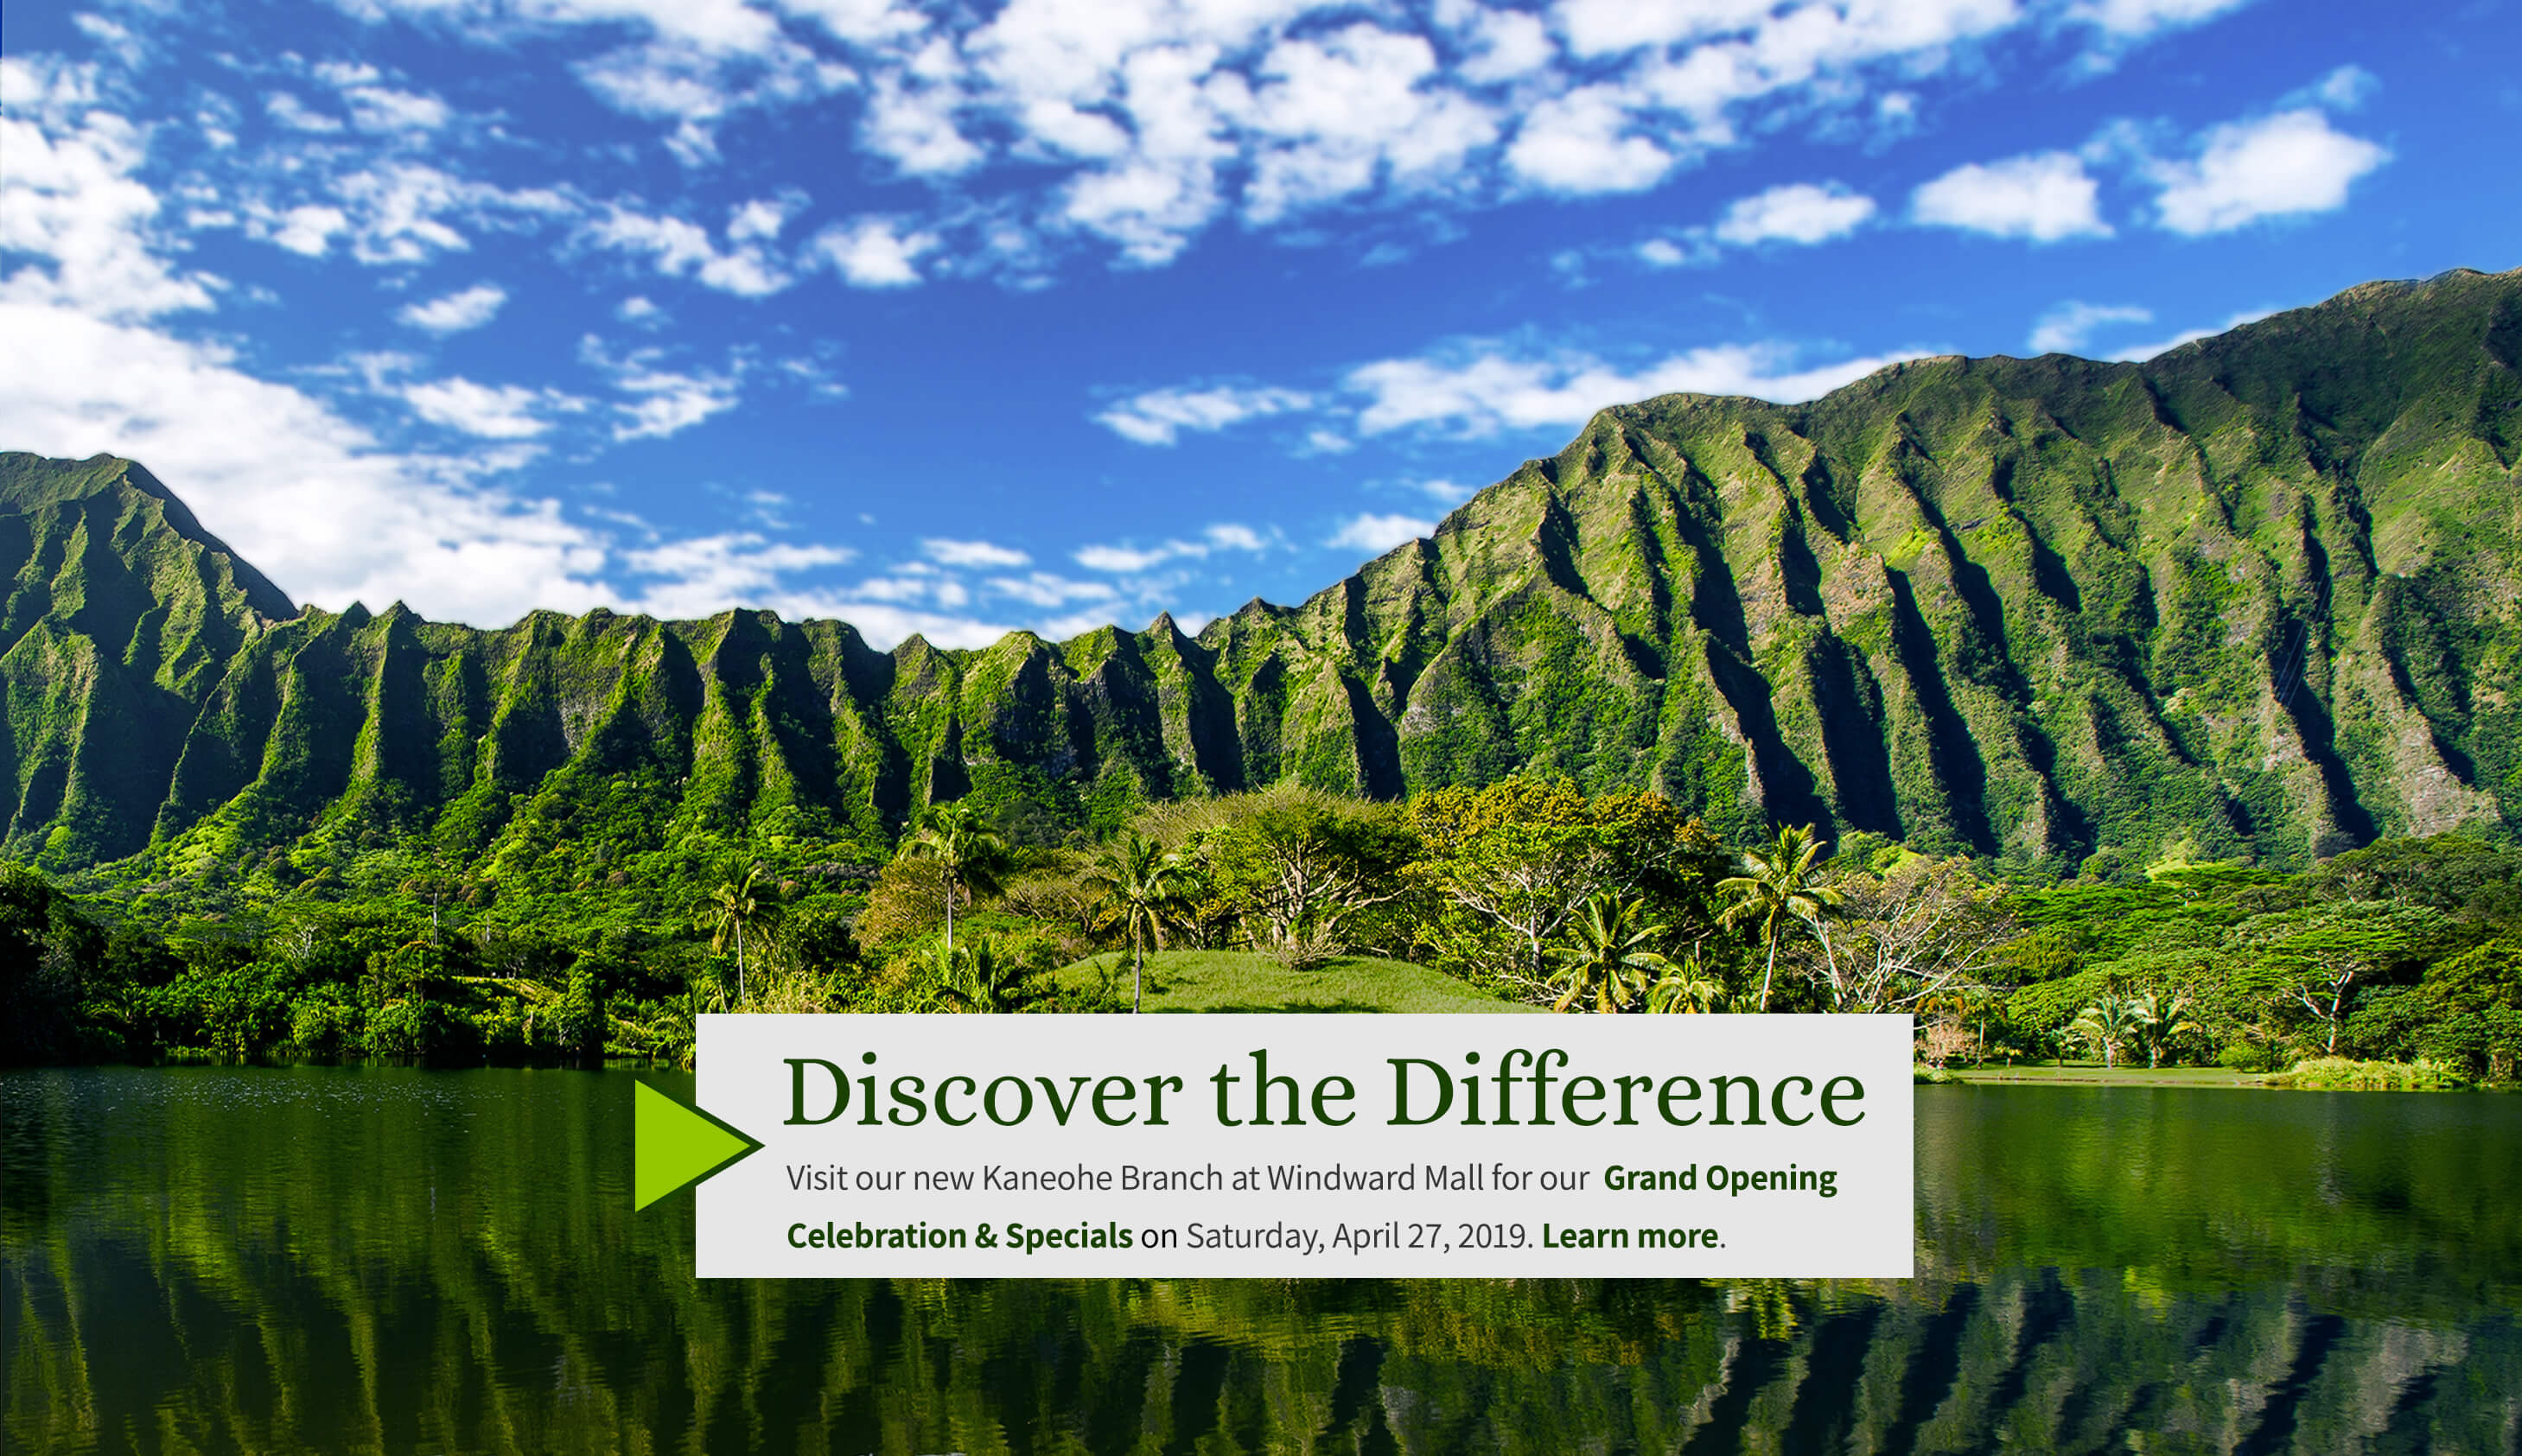 Discover the difference.Visit our new Kaneohe Branch at Windward Mall for our Grand Opening Celebration and Specials on Saturday, April 27, 2019.